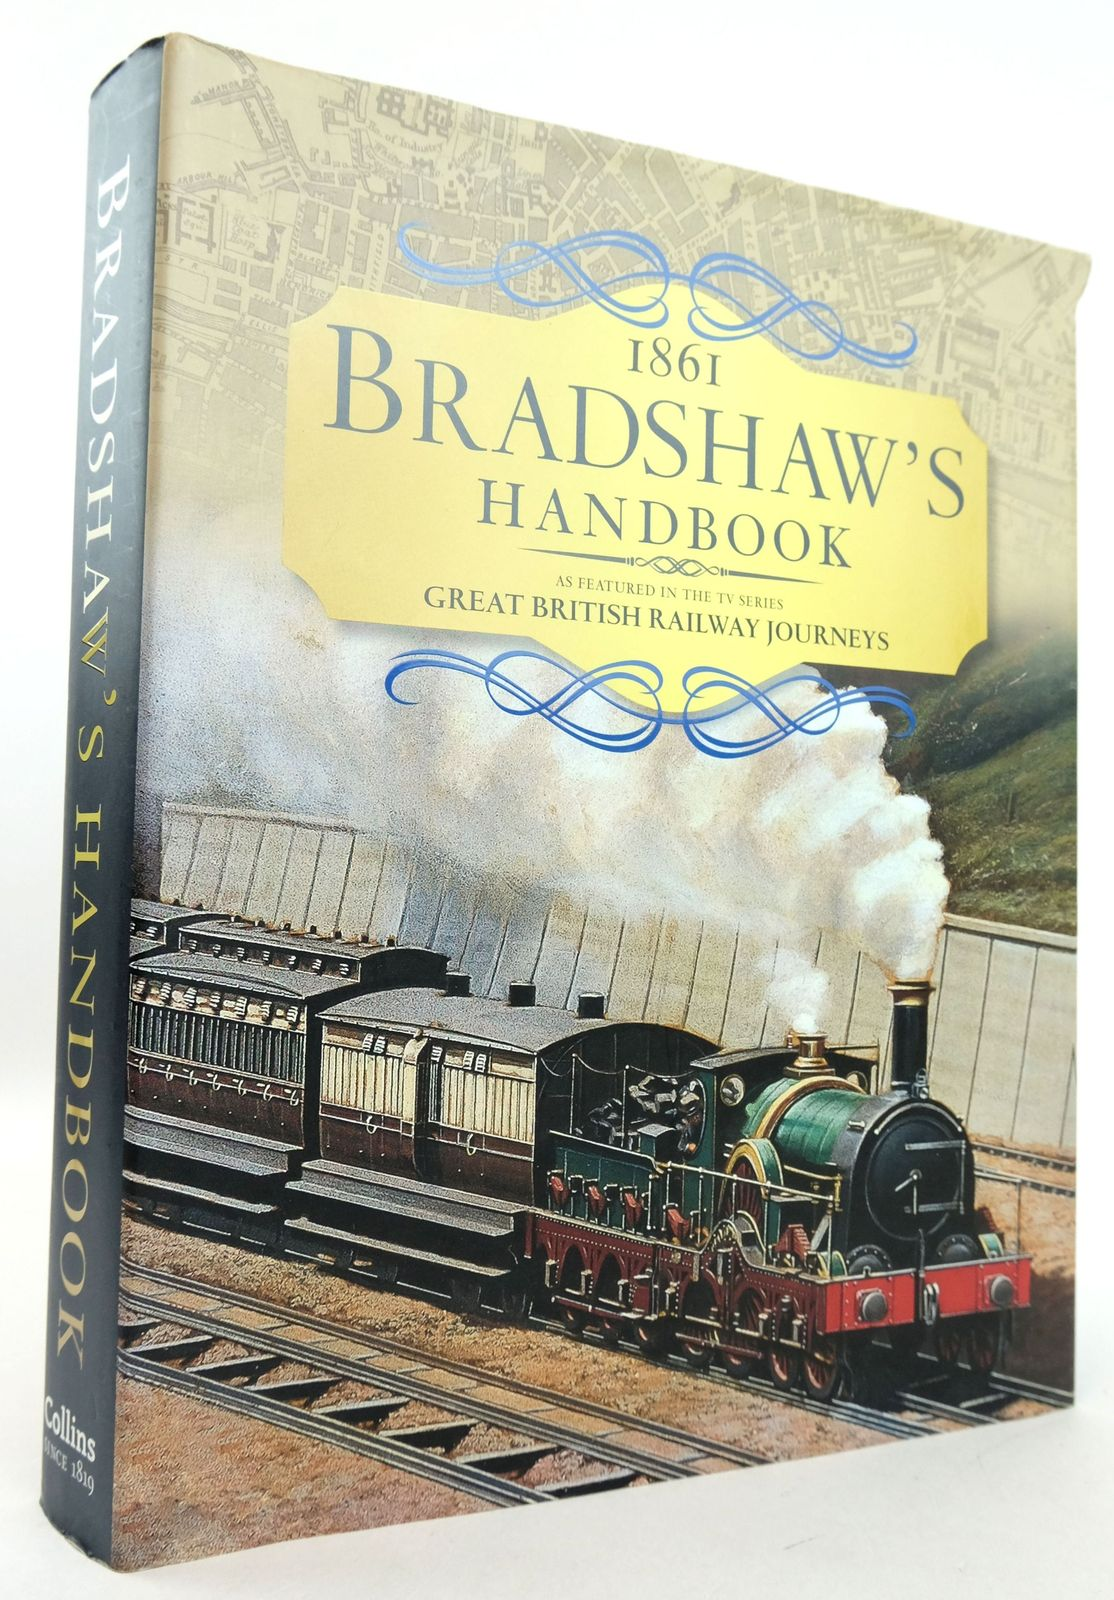 Photo of BRADSHAW'S DESCRIPTIVE RAILWAY HAND-BOOK OF GREAT BRITAIN AND IRELAND 1861- Stock Number: 1819348